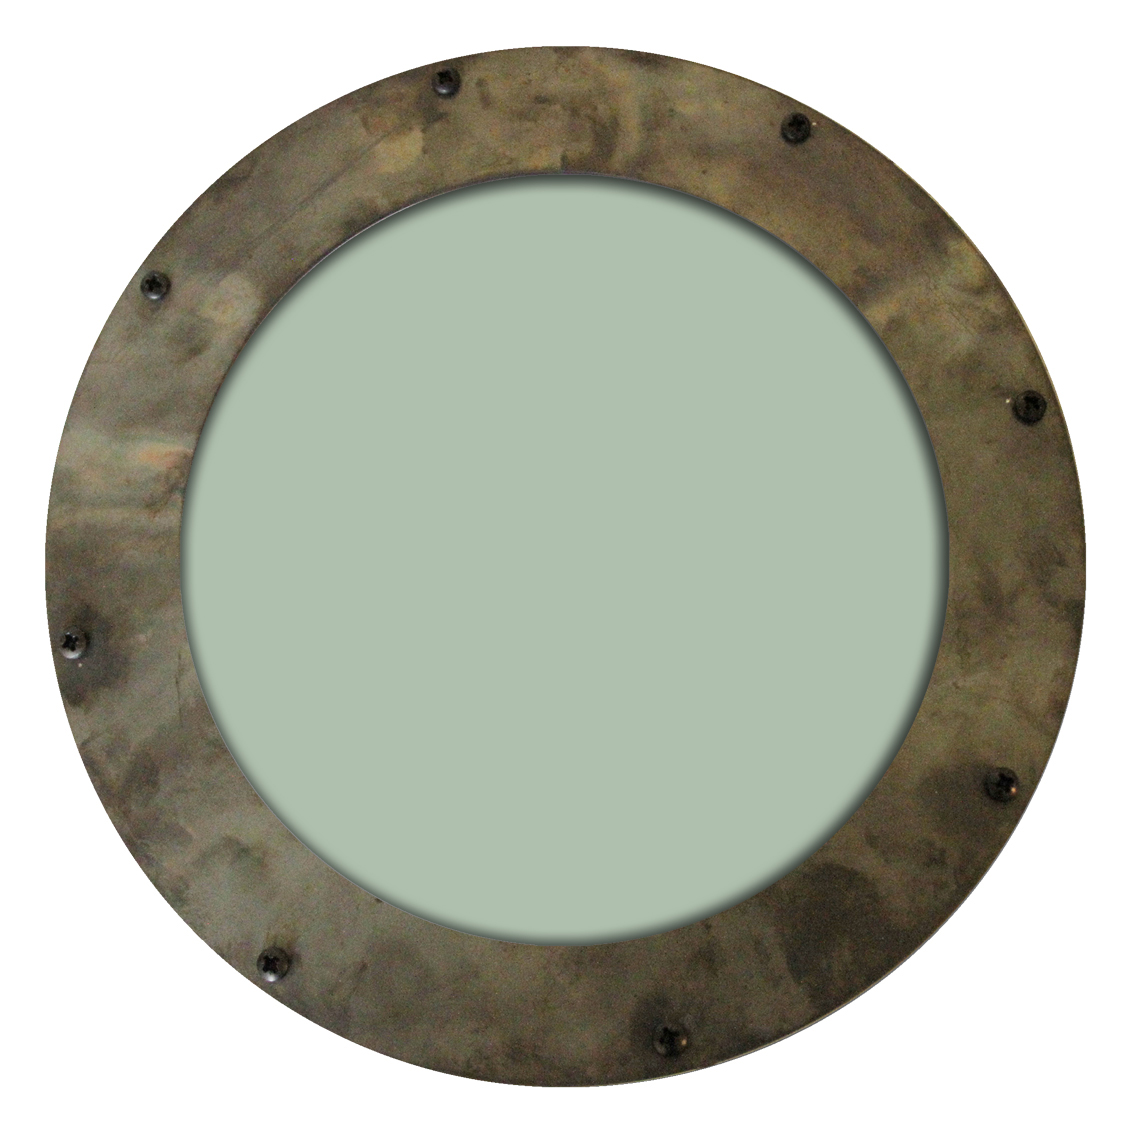 Burnished Steel Portholes